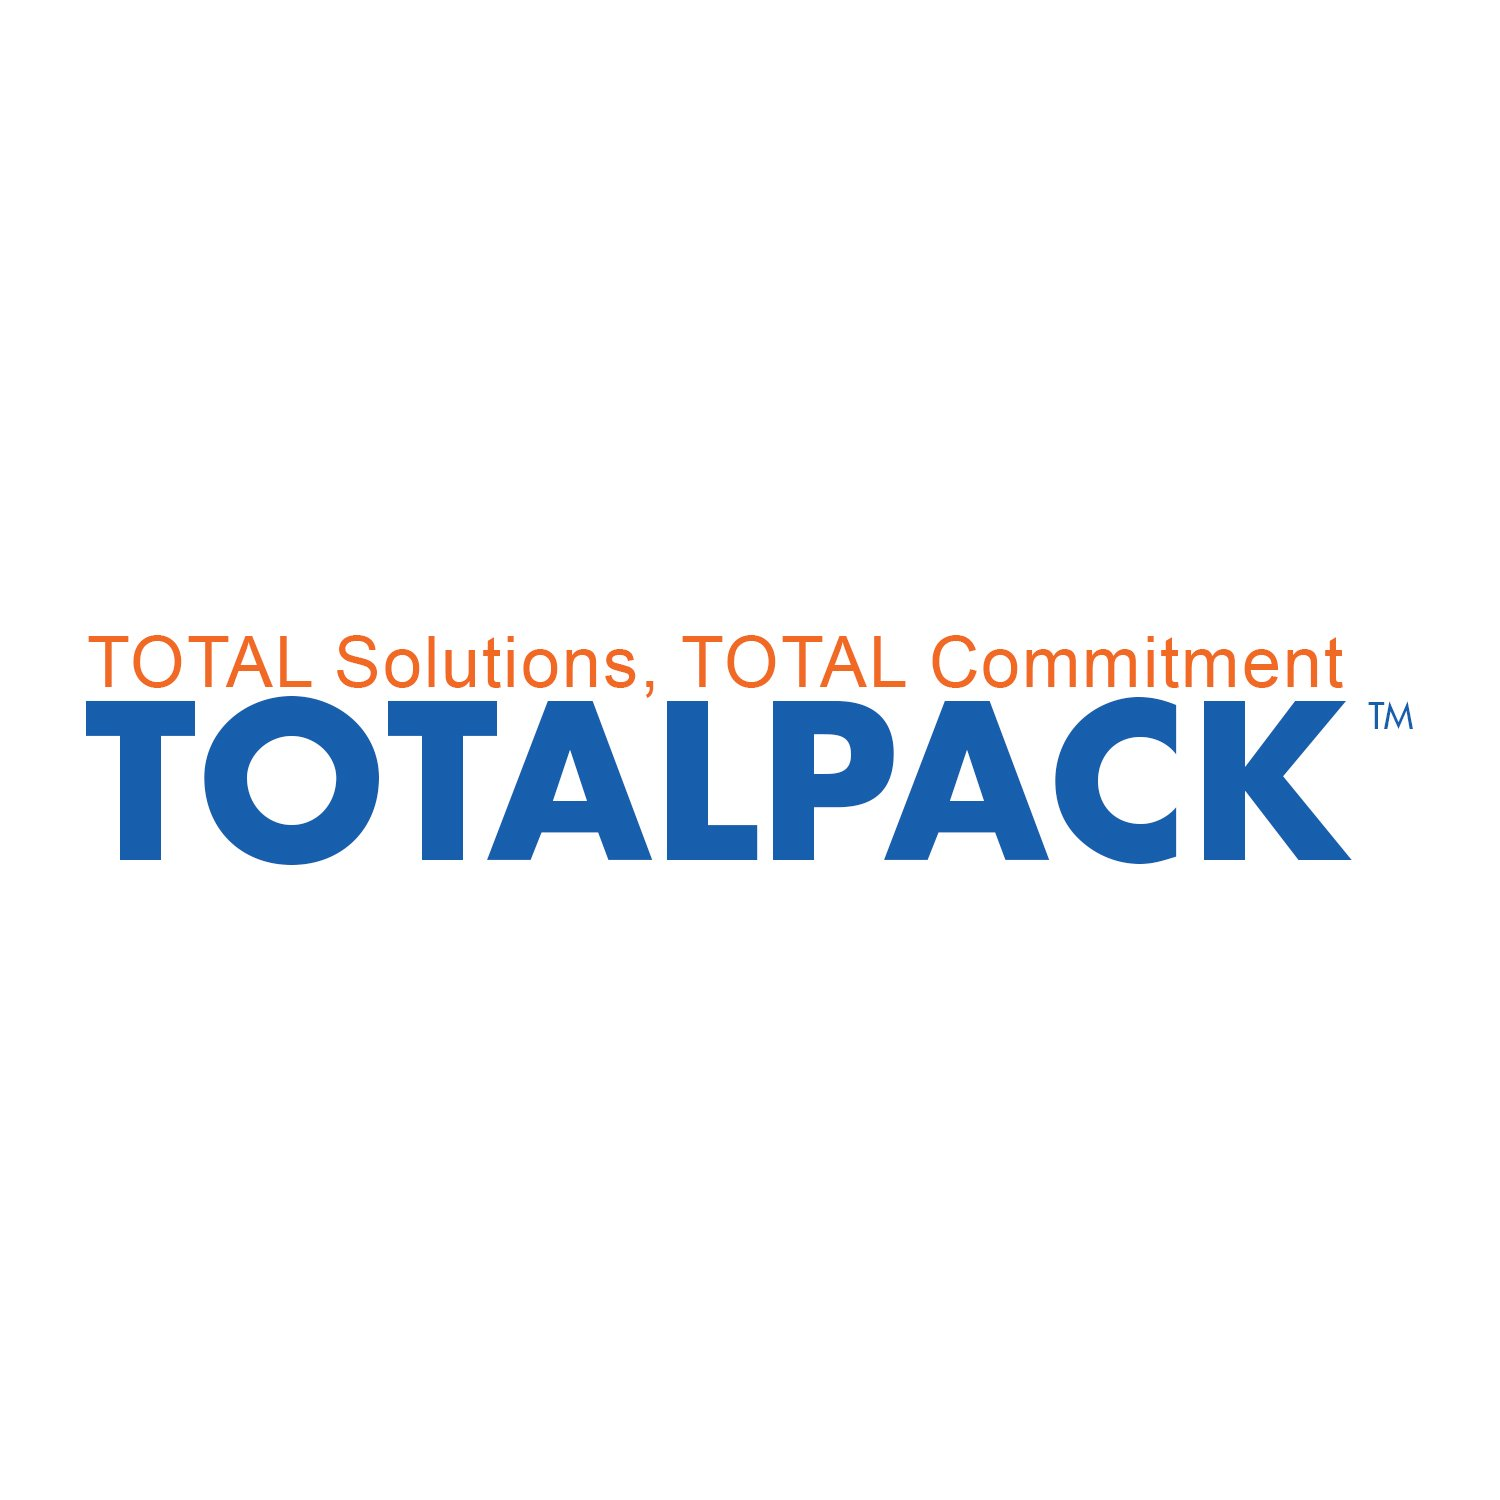 Totalpack 25-LBS Ultimate Newsprint Packing Paper Jumbo Bundle, Large 24'' x 36'' Size, Durable Ink-Free Wrapping Paper for Moving Glassware, 407 Sheets by Totalpack